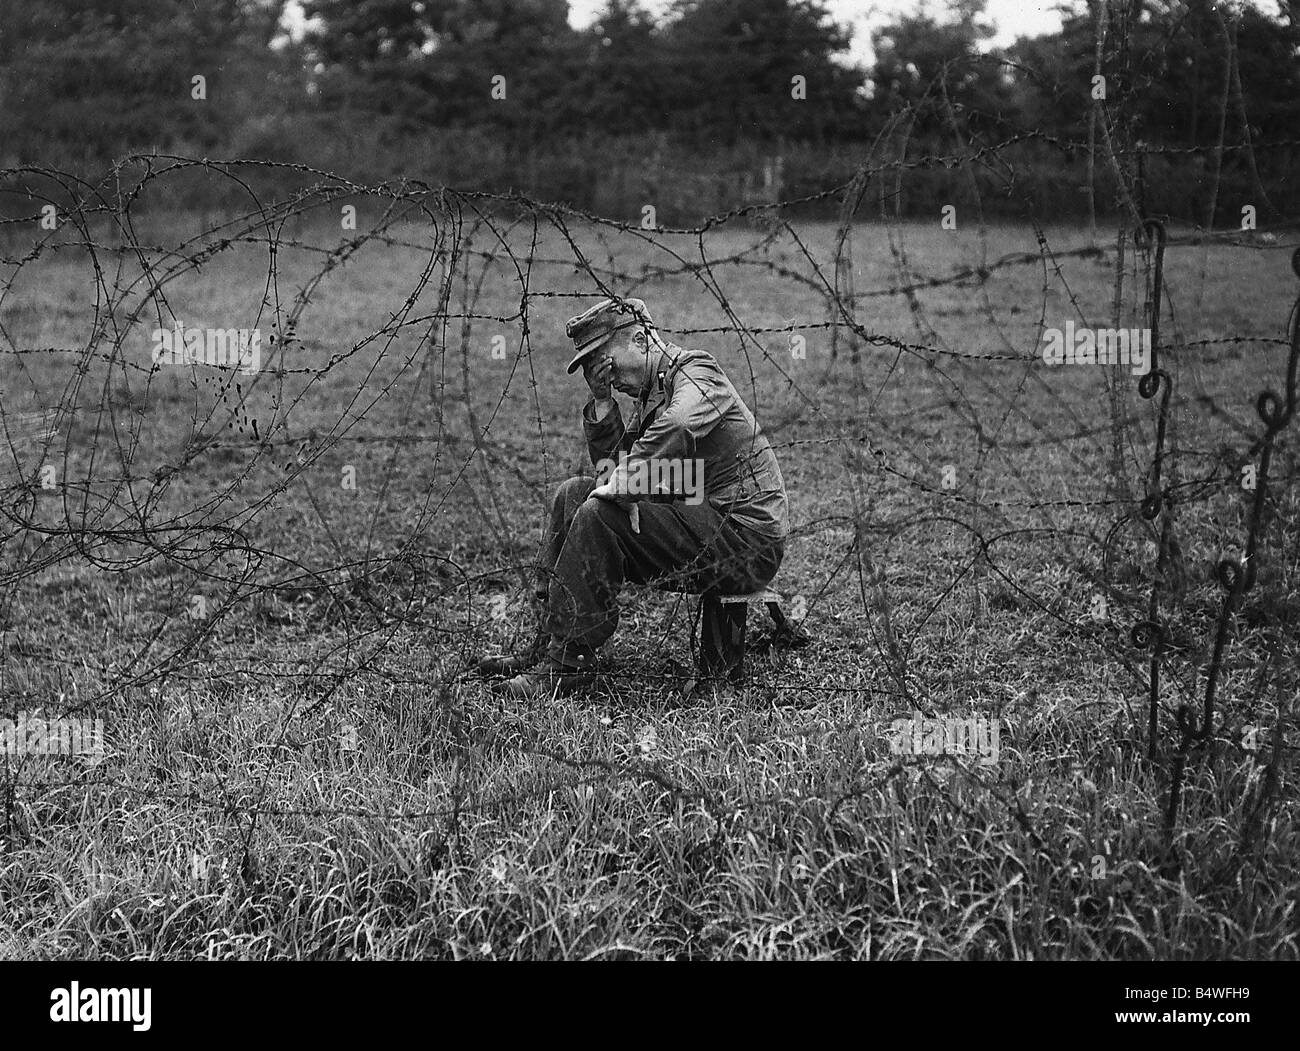 German Pow World War Ii Stockfotos & German Pow World War Ii Bilder ...